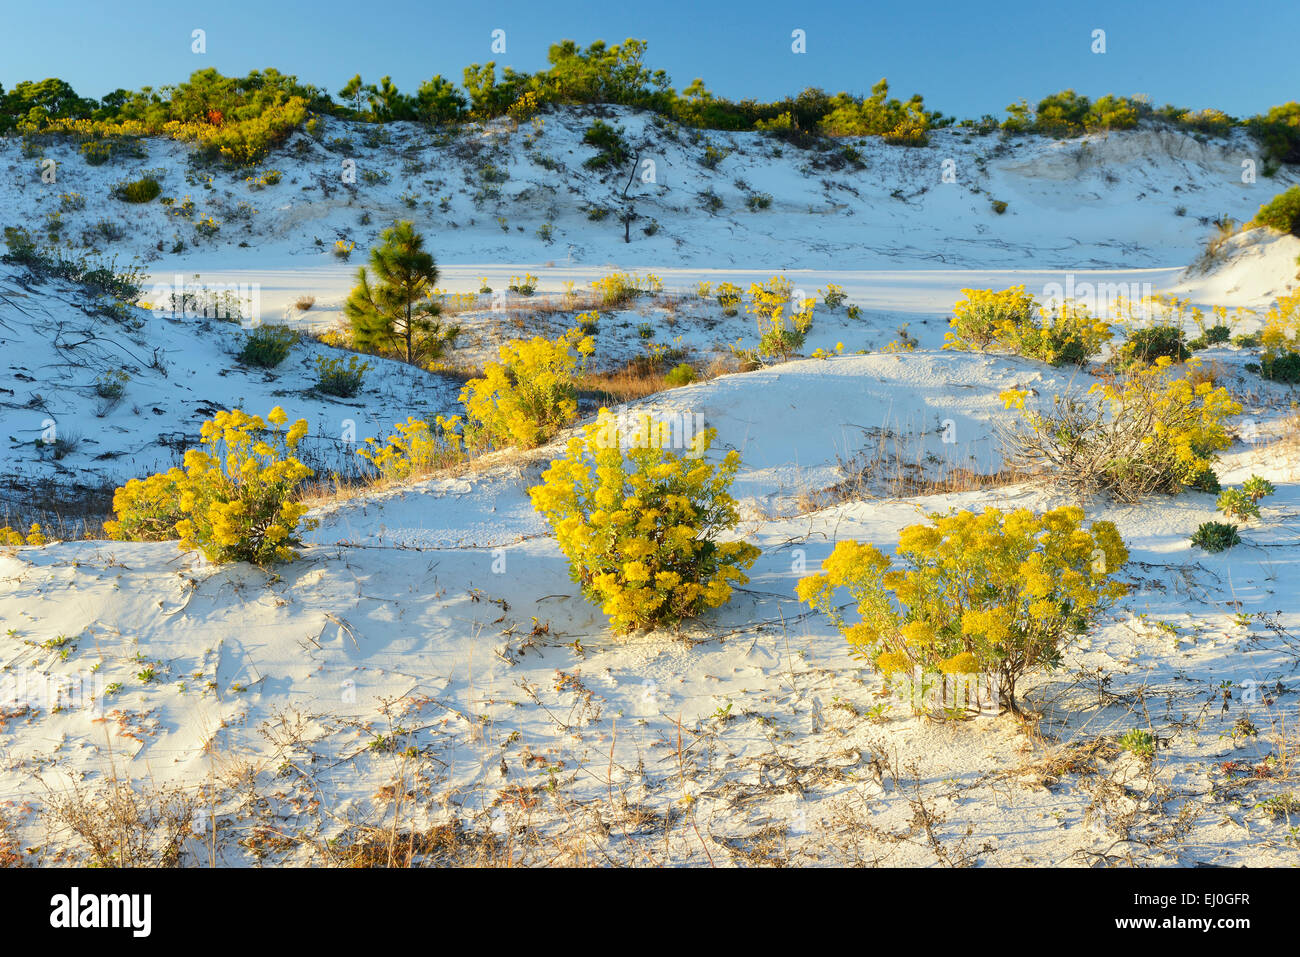 USA, Florida, Franklin County, Gulf of Mexico, Apalachicola, St. George Island, State Park, dune and rabbit brush Stock Photo